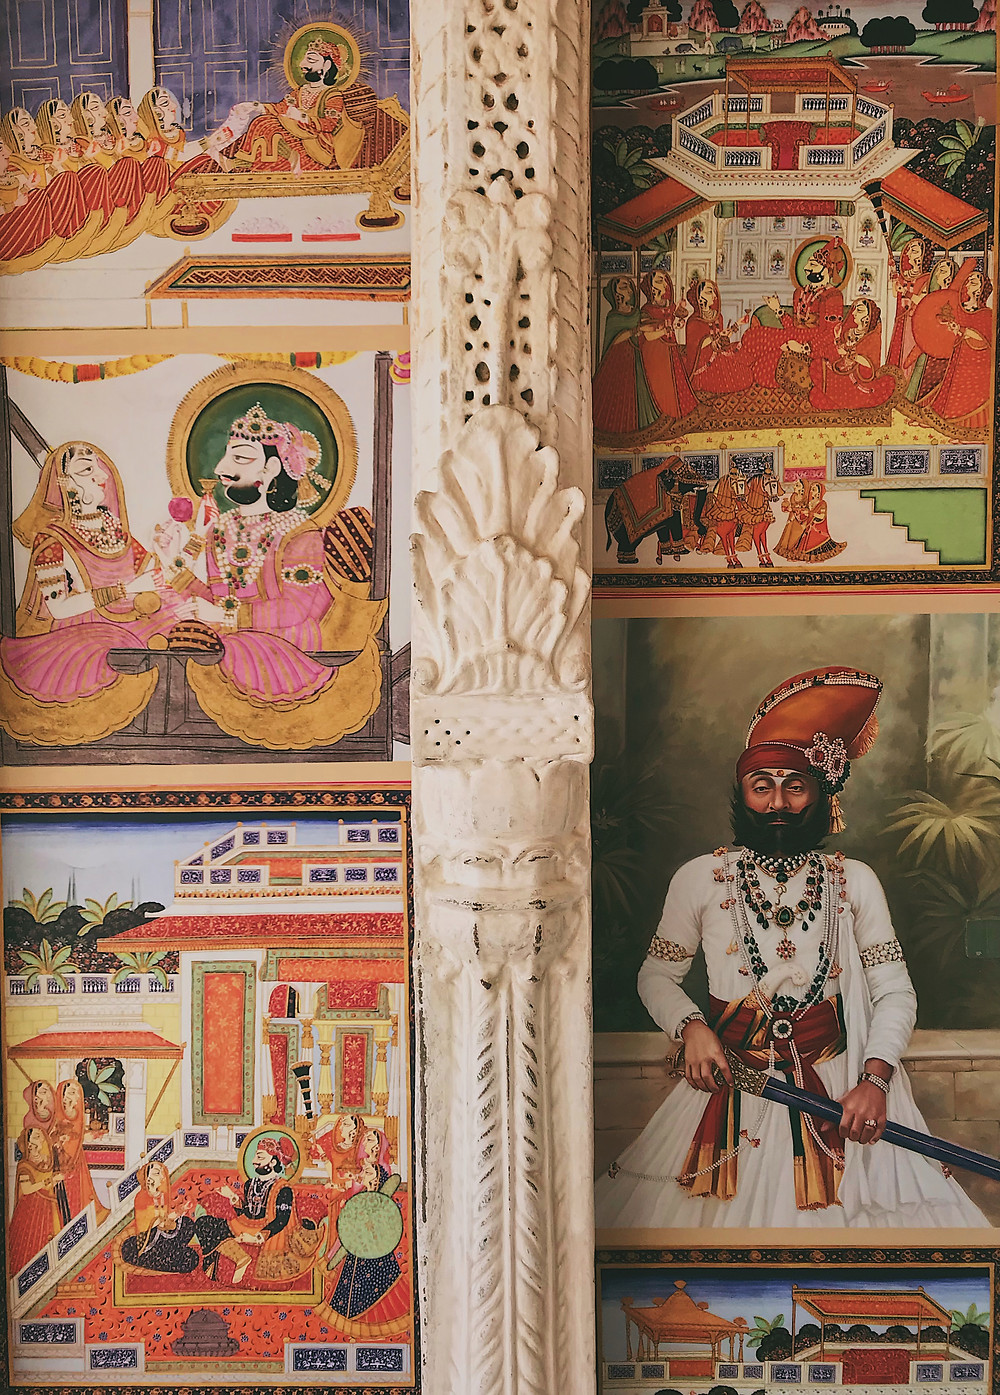 Paintings of Mehrangarh Fort, Jodhpur, India